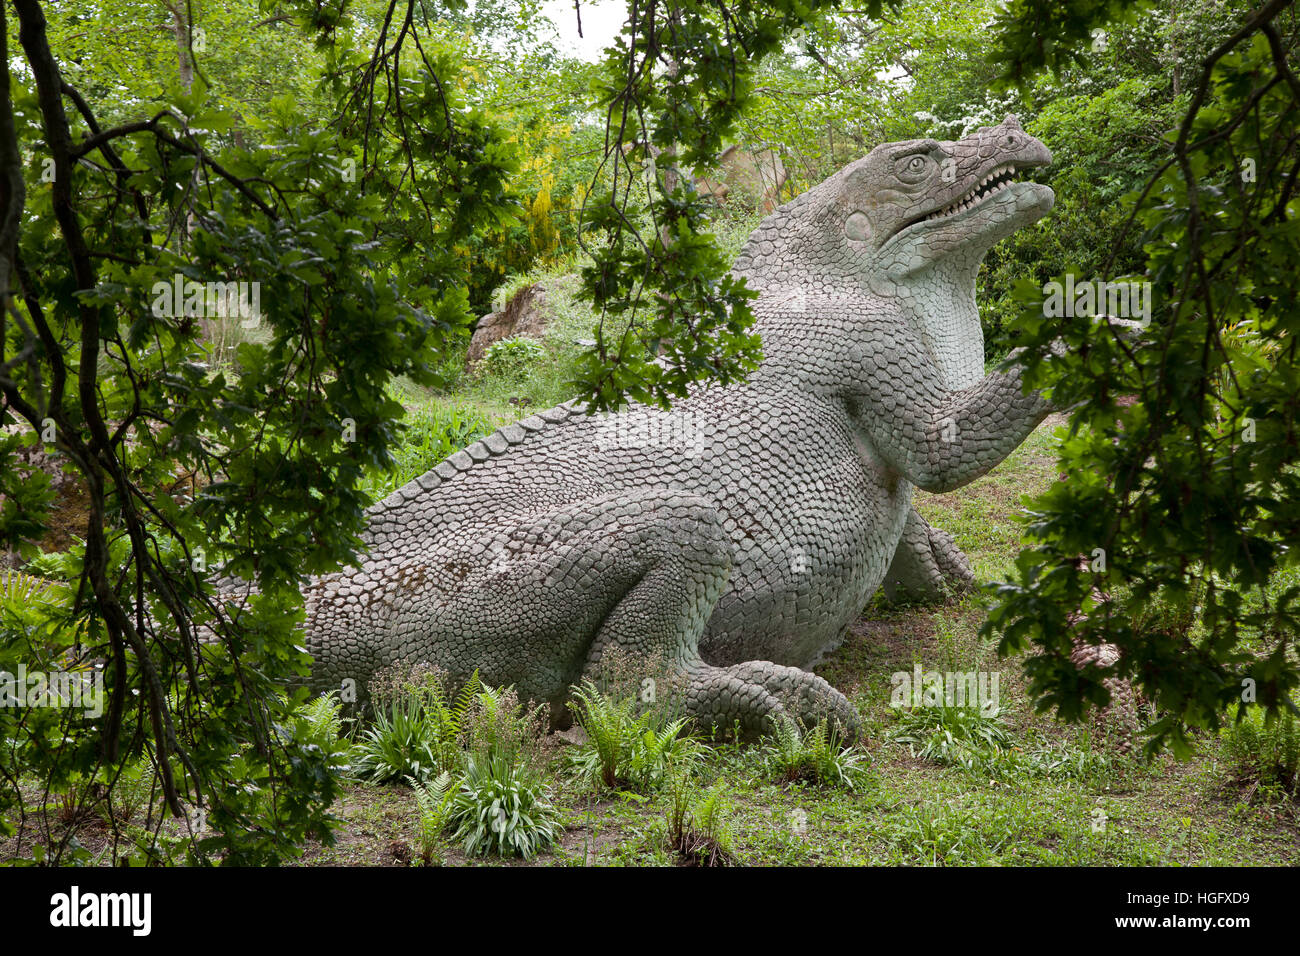 Dinosaurs Sculptures In Crystal Palace Park, London, UK   Stock Image